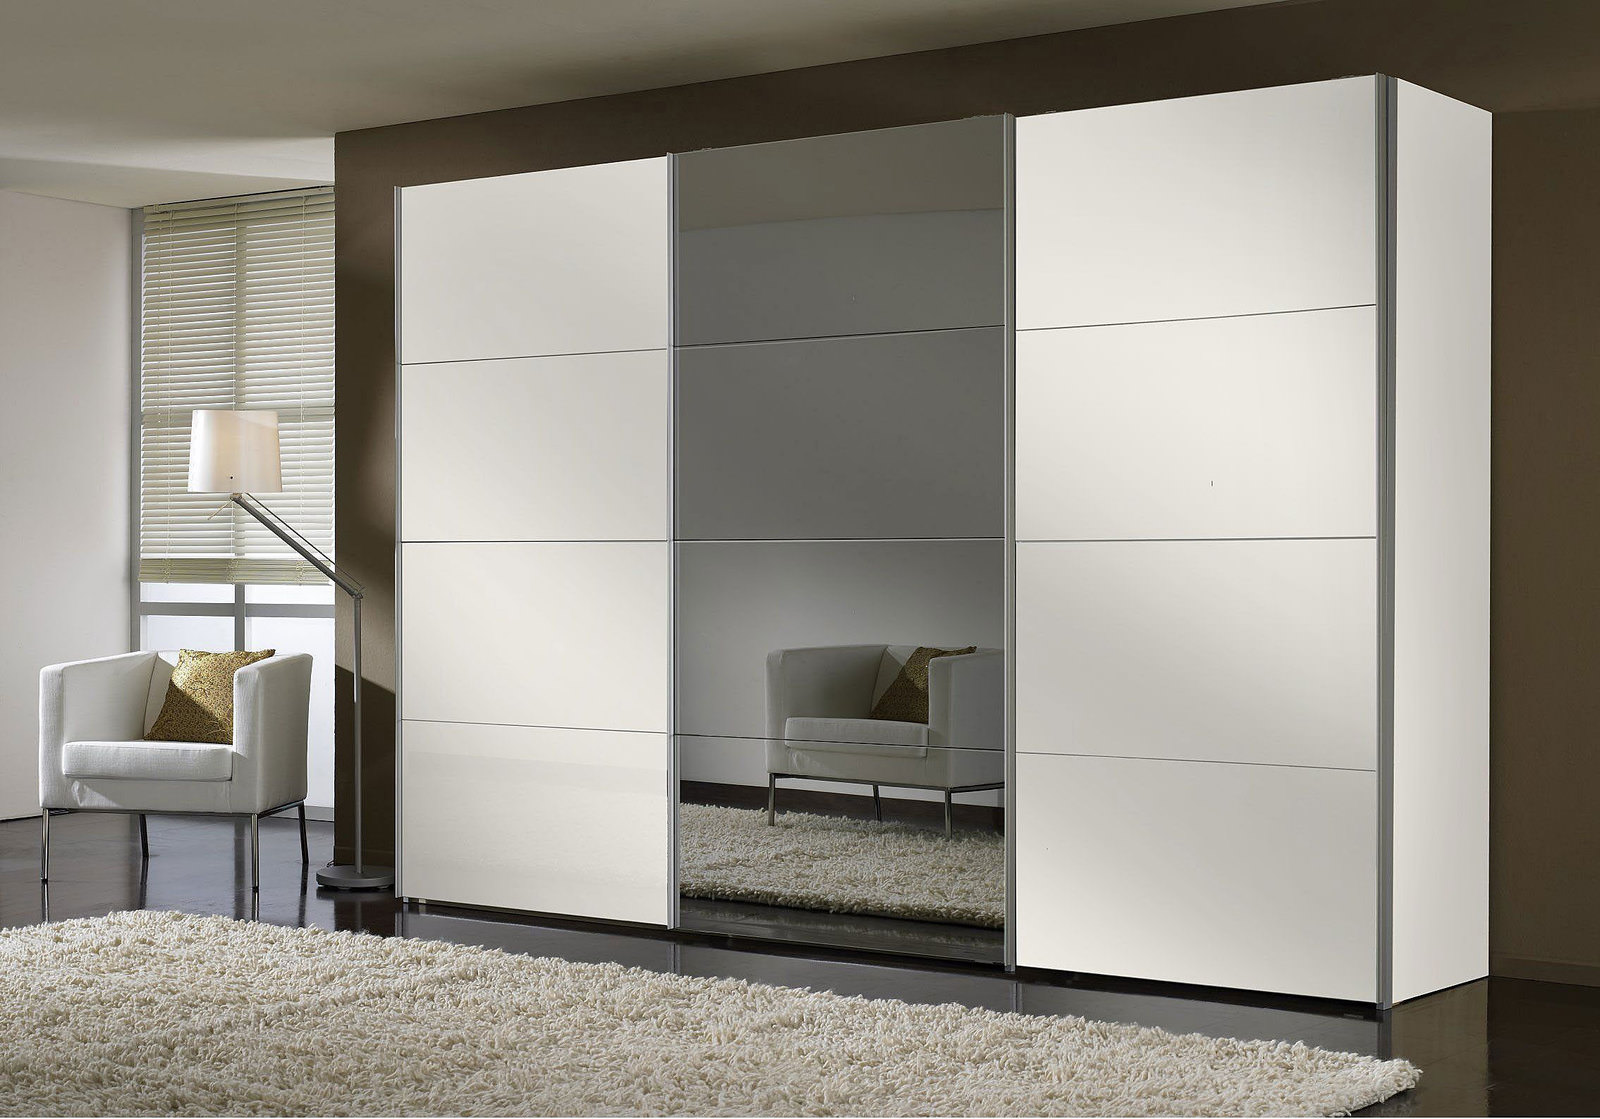 liv 39 in schwebet renschrank online entdecken schaffrath ihr m belhaus. Black Bedroom Furniture Sets. Home Design Ideas